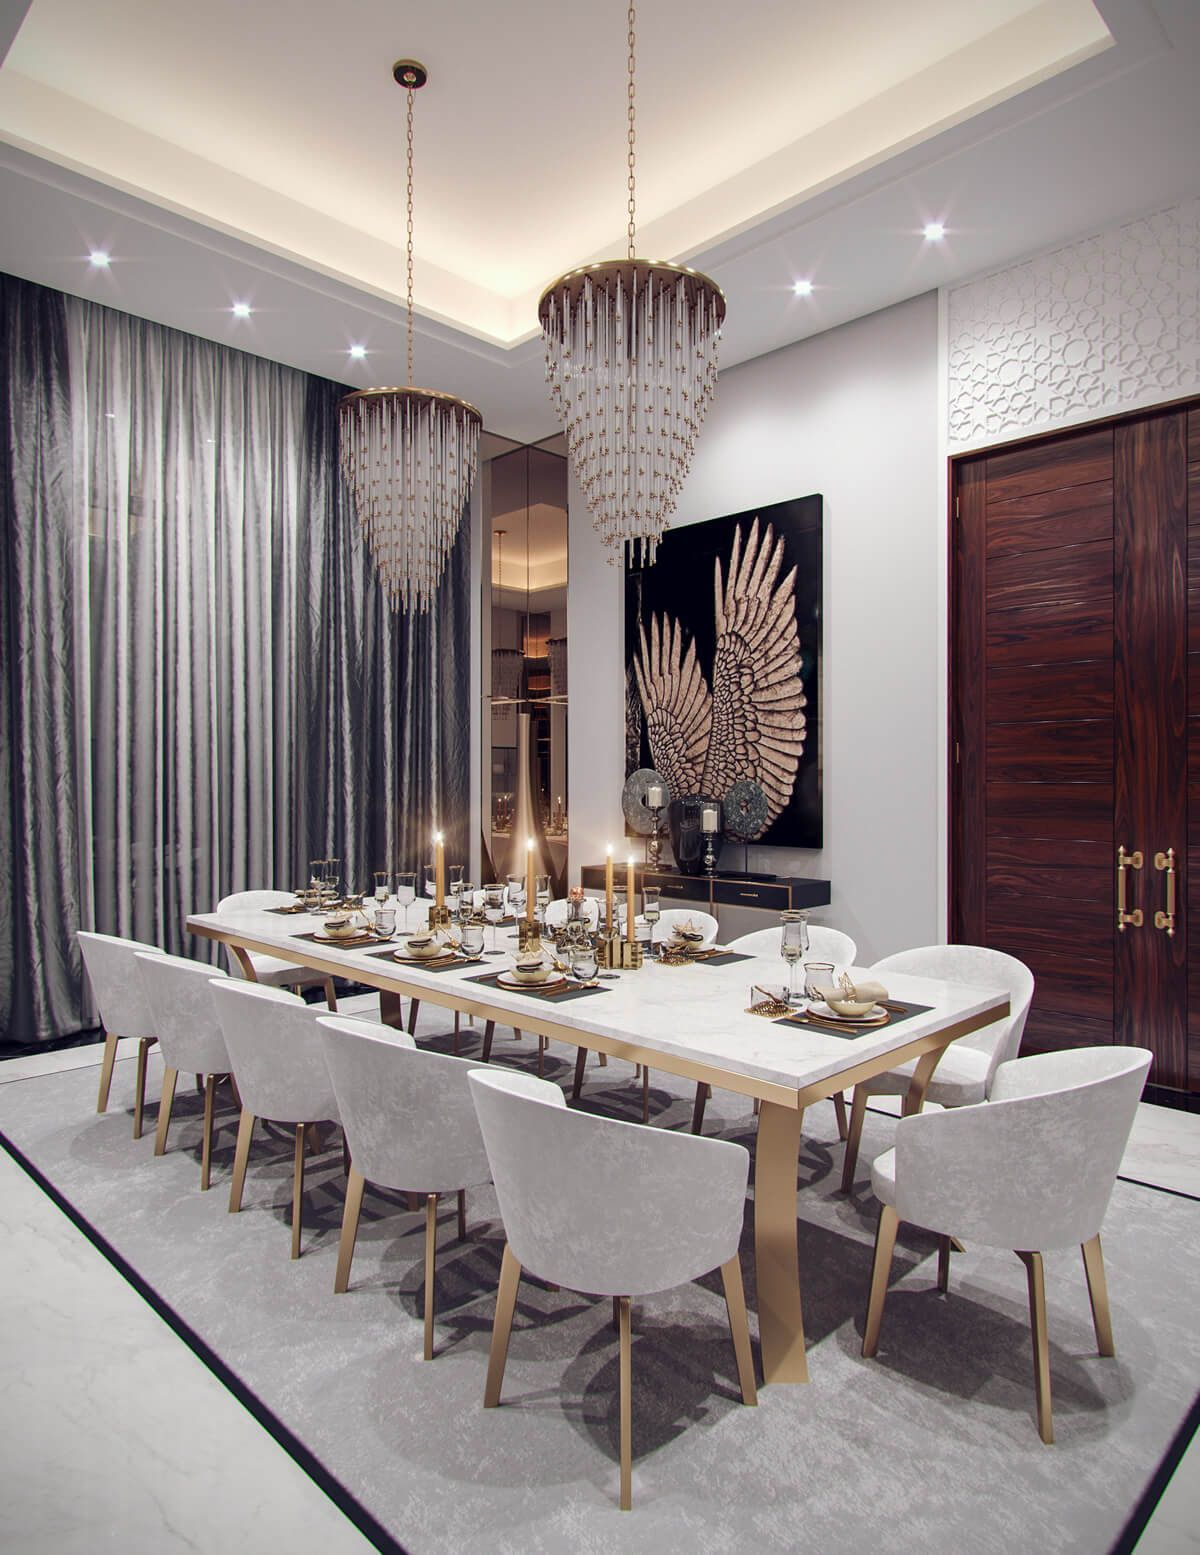 Home Decor Trends To Expect The Upcoming Season Interior Design Dining Room Dining Room Contemporary Luxury Dining Room